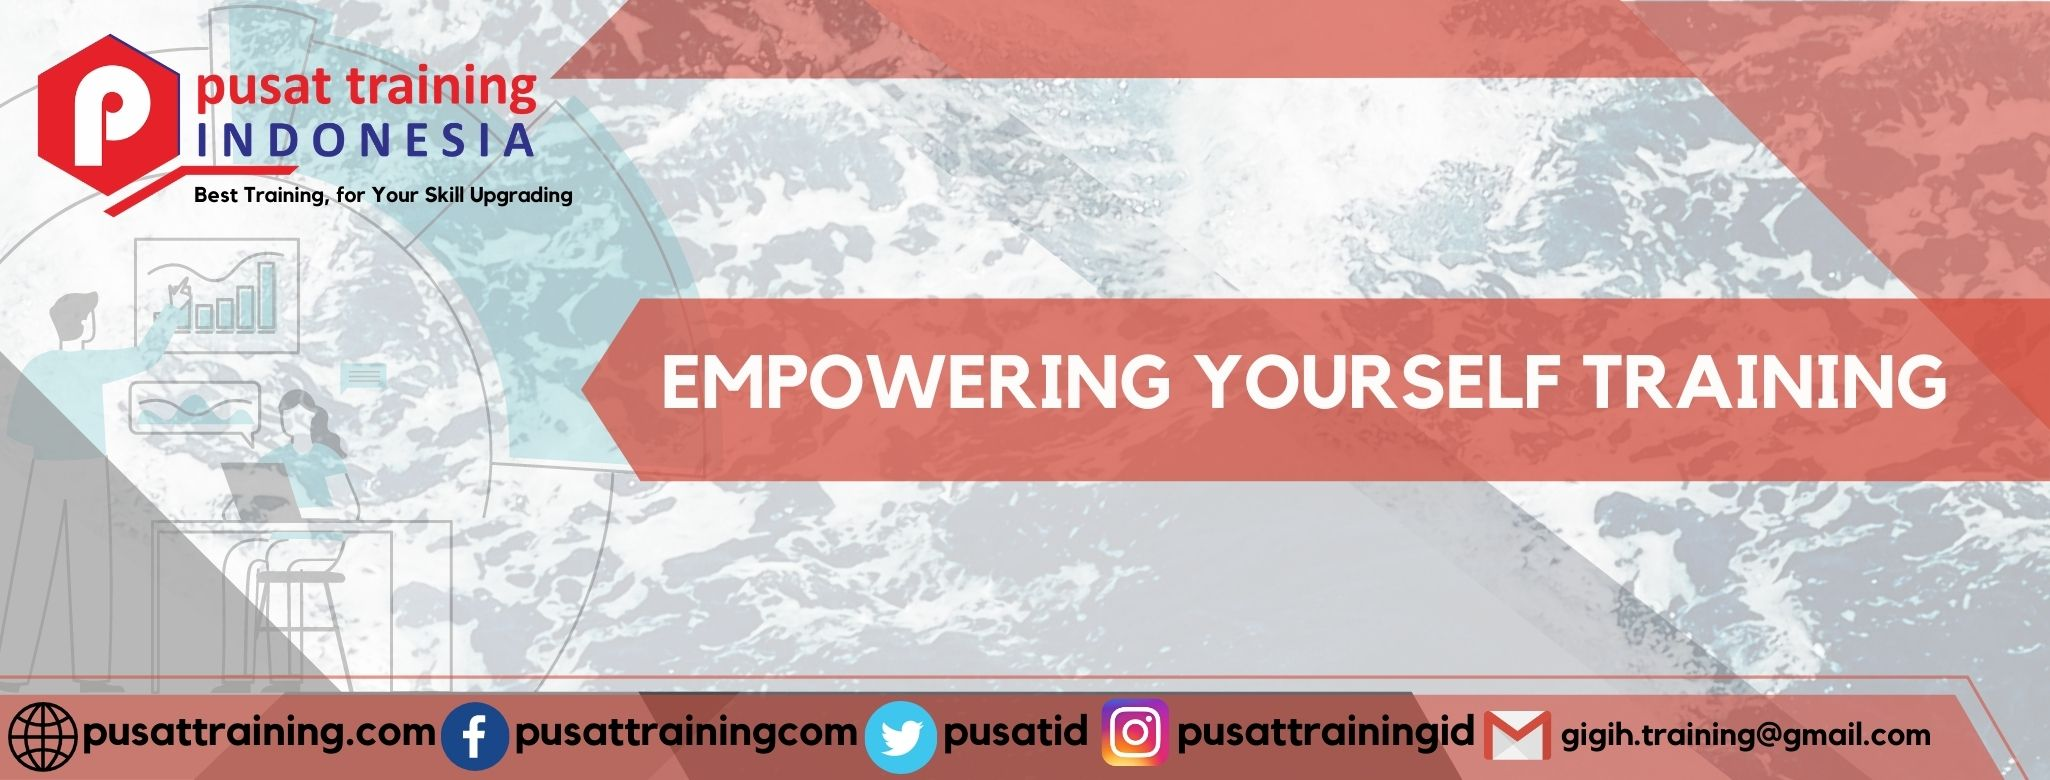 EMPOWERING YOURSELF TRAINING